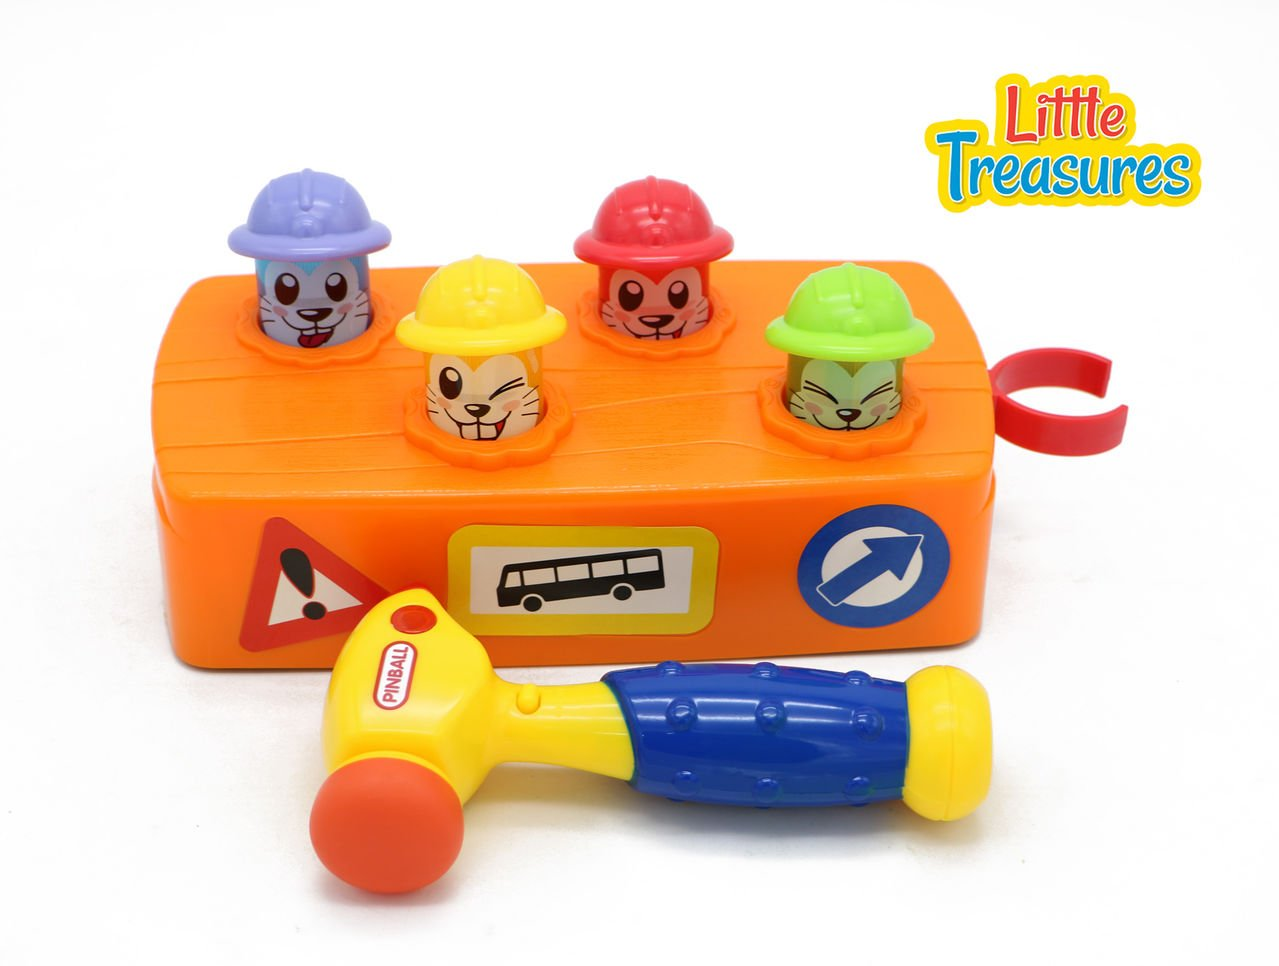 Little Treasures Whack A Mole Construction Hammer Time Play Set from with Smack Down Mole Station and Play Toy Hammer